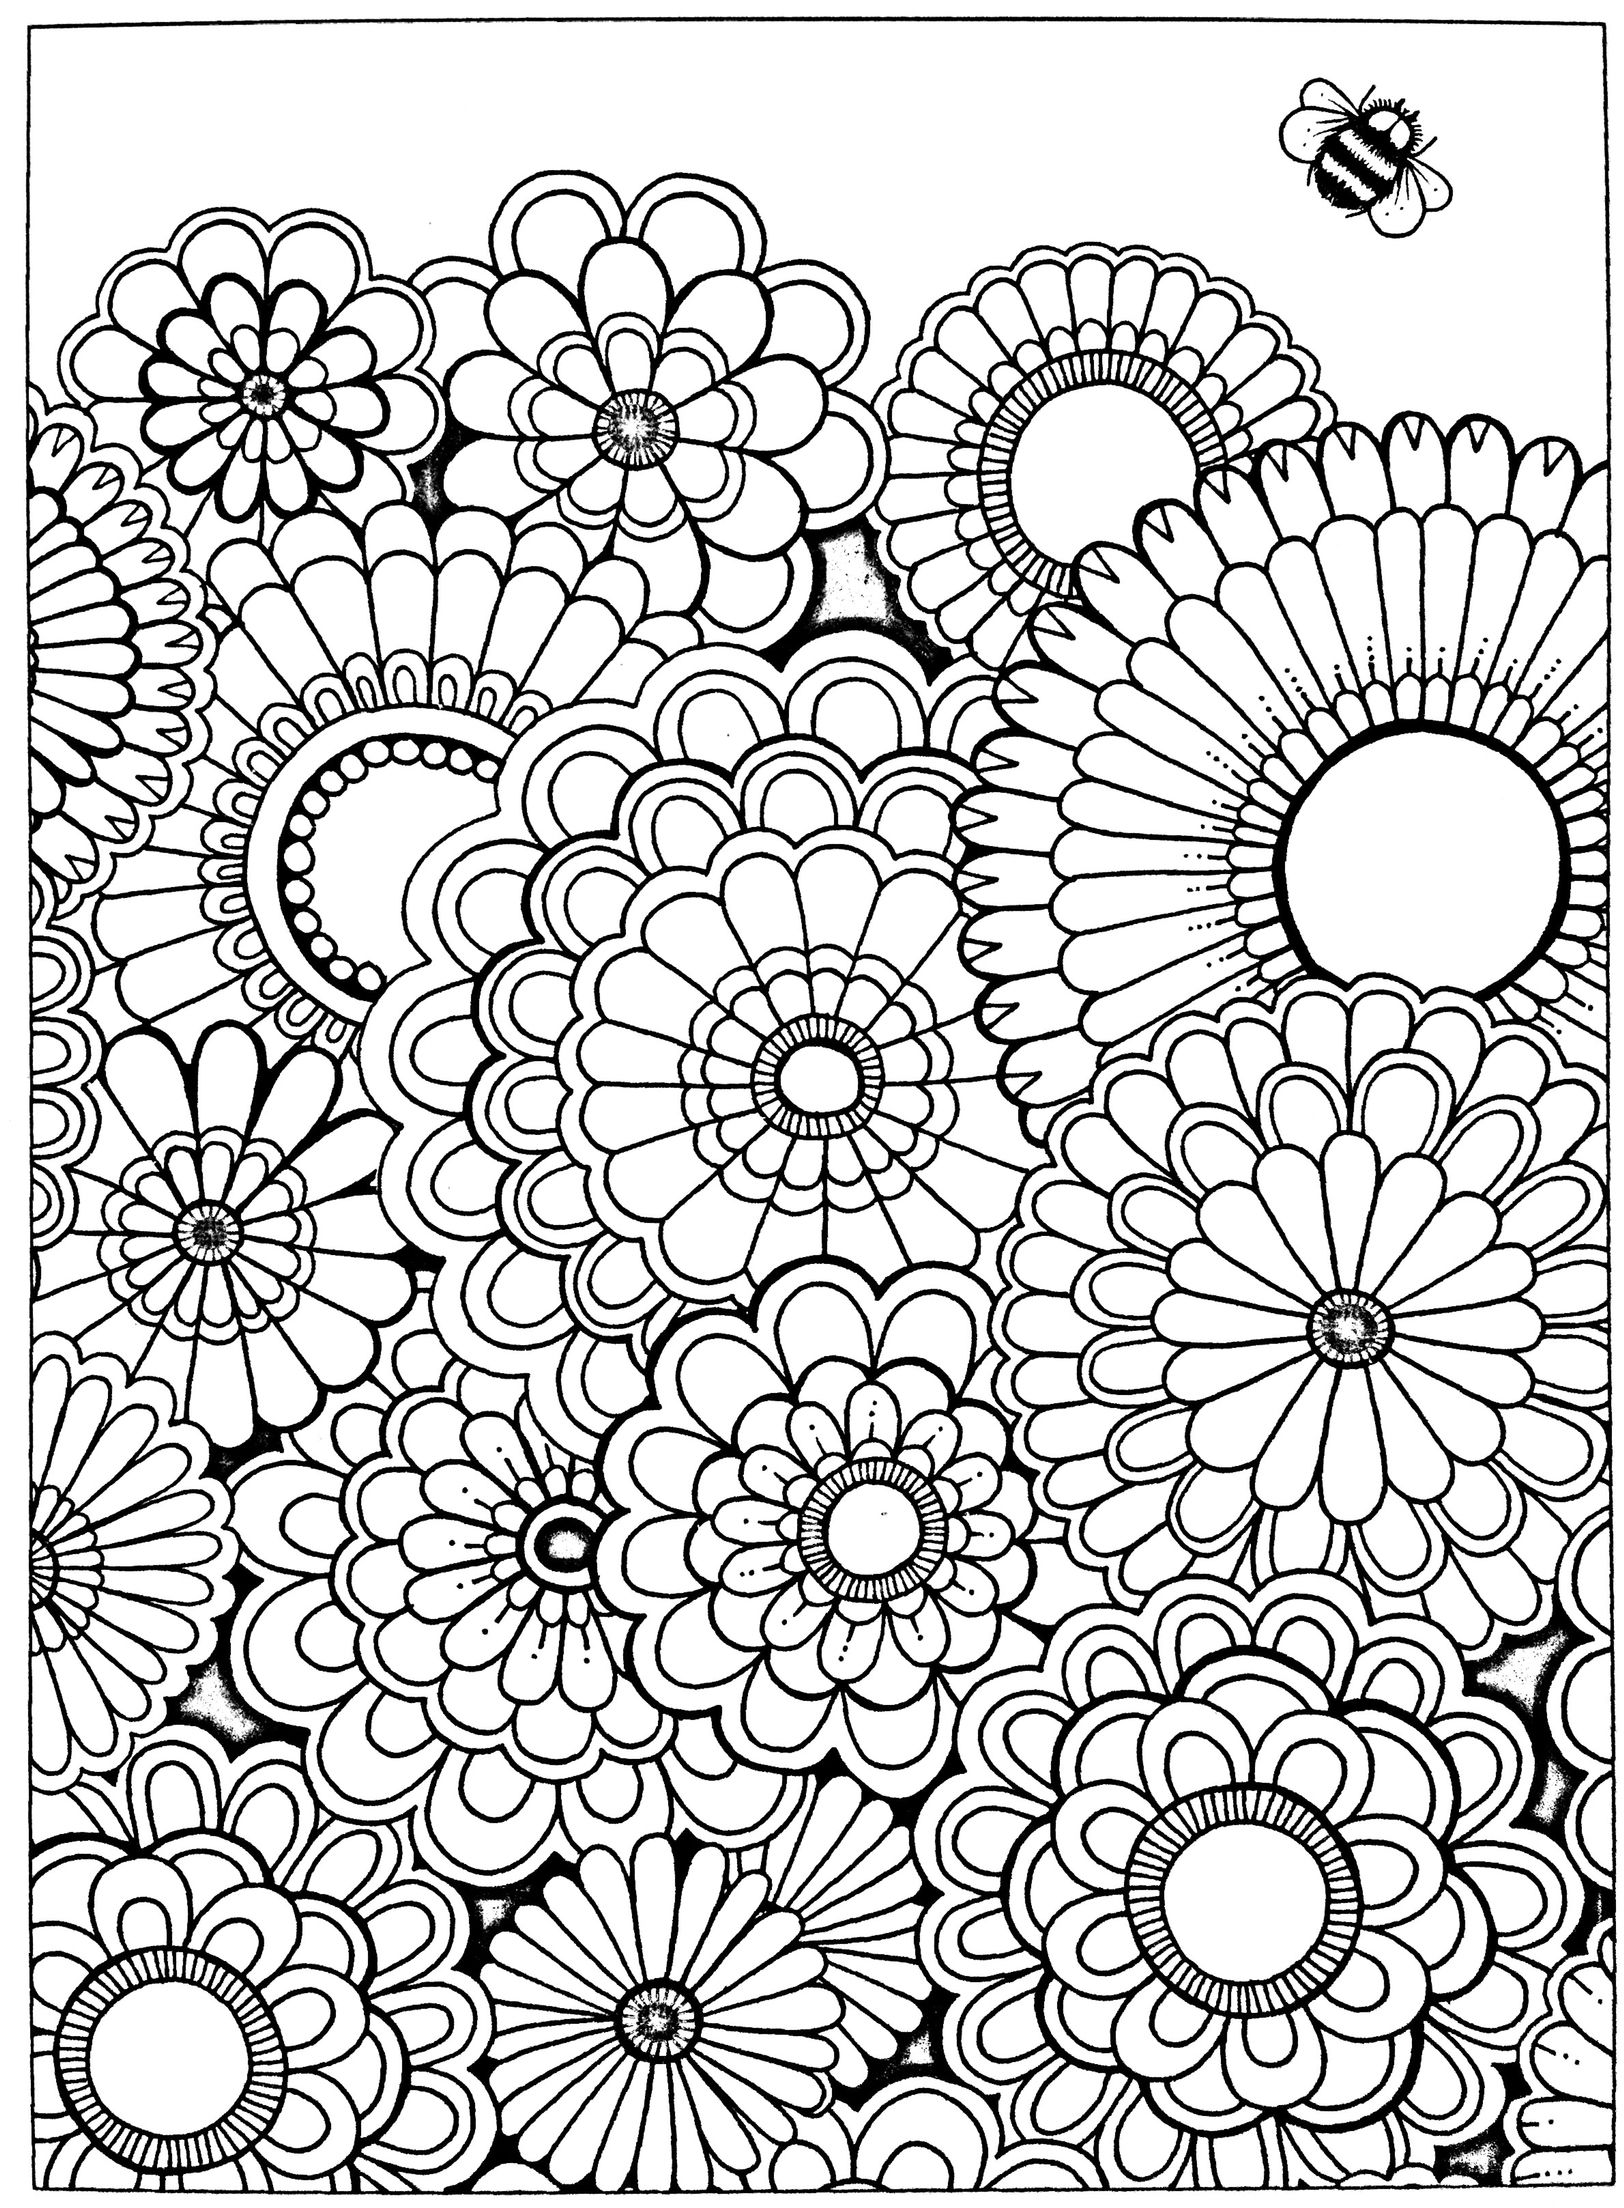 Free Adult Coloring Page Secret Garden Coloring Books Coloring